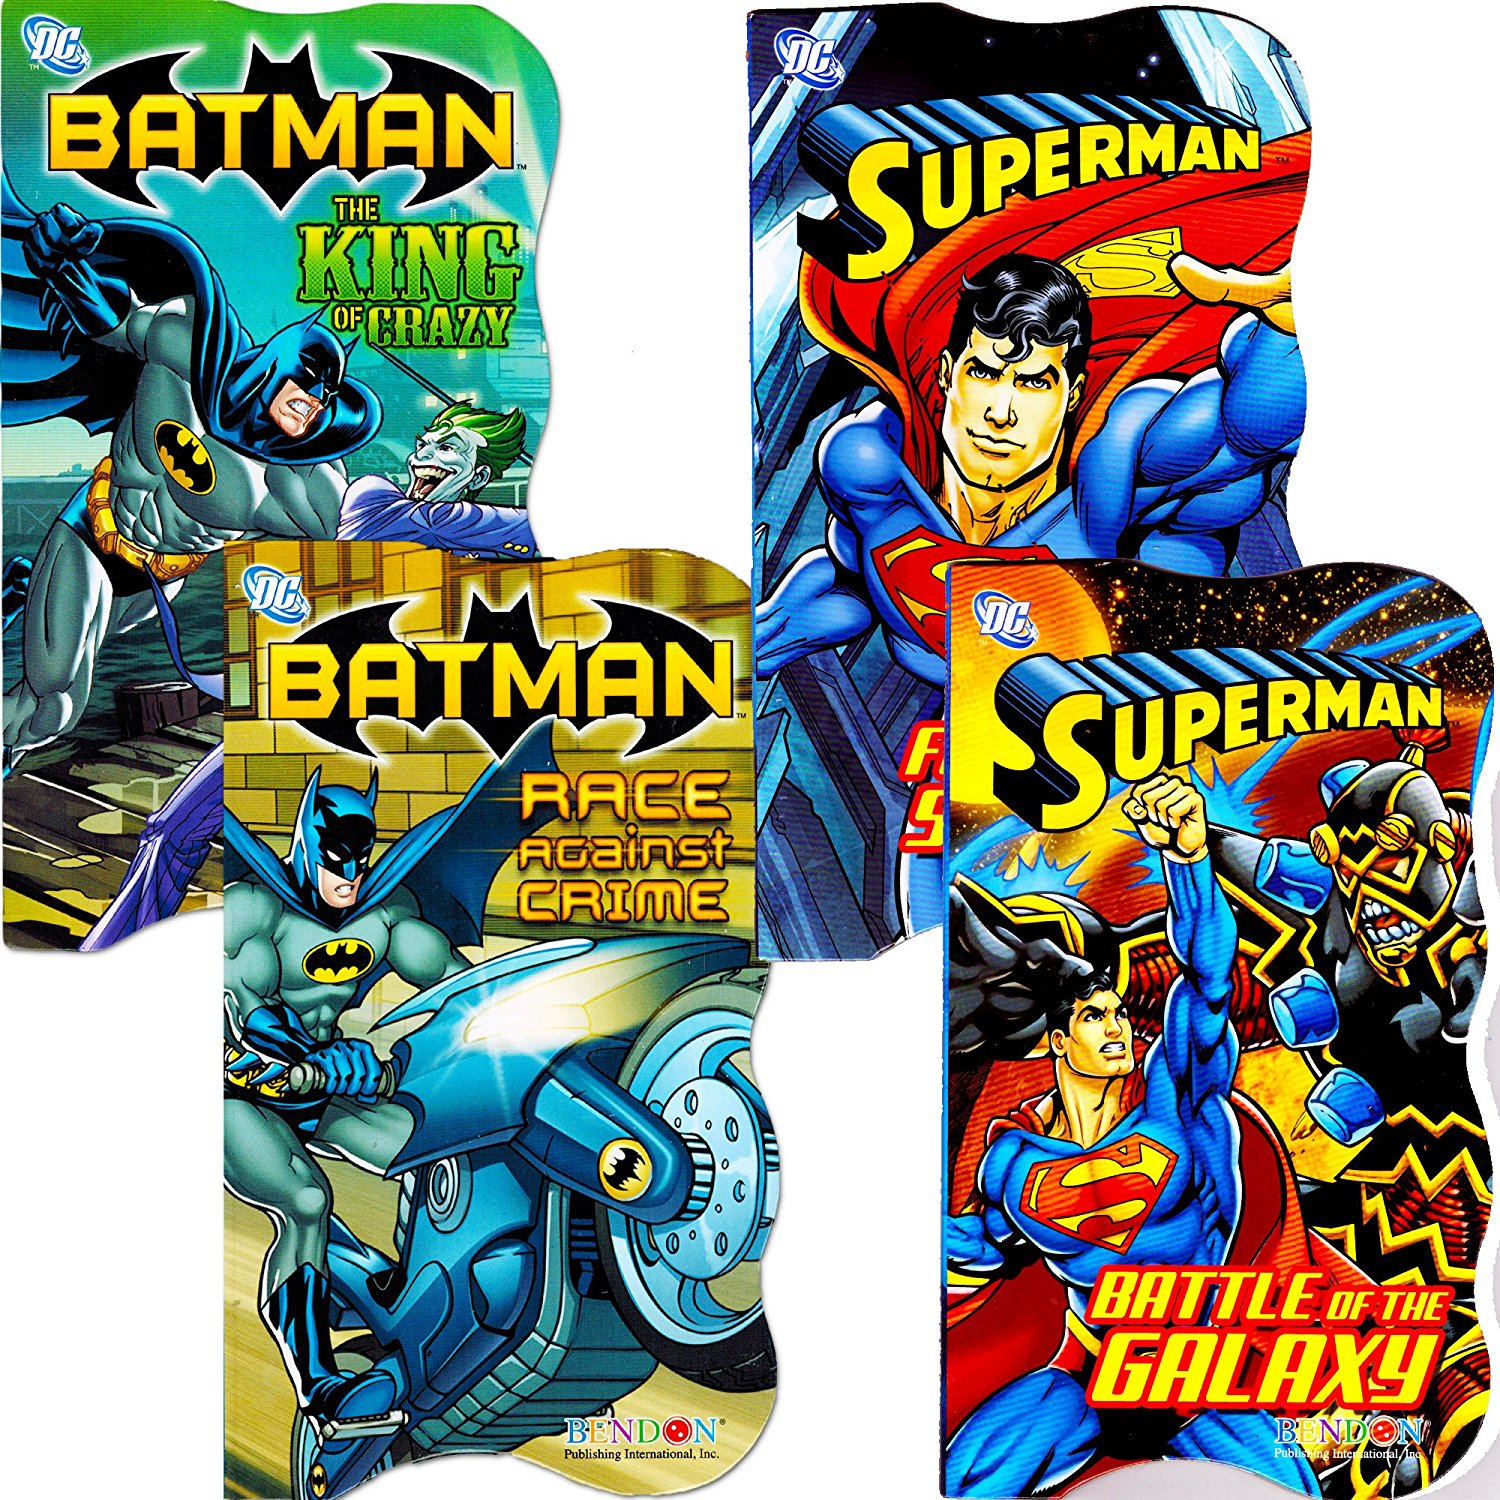 DC Comics Batman vs Superman Board Books for Toddlers - Set of Four Books (2 Batman Books, 2 Superman Books)